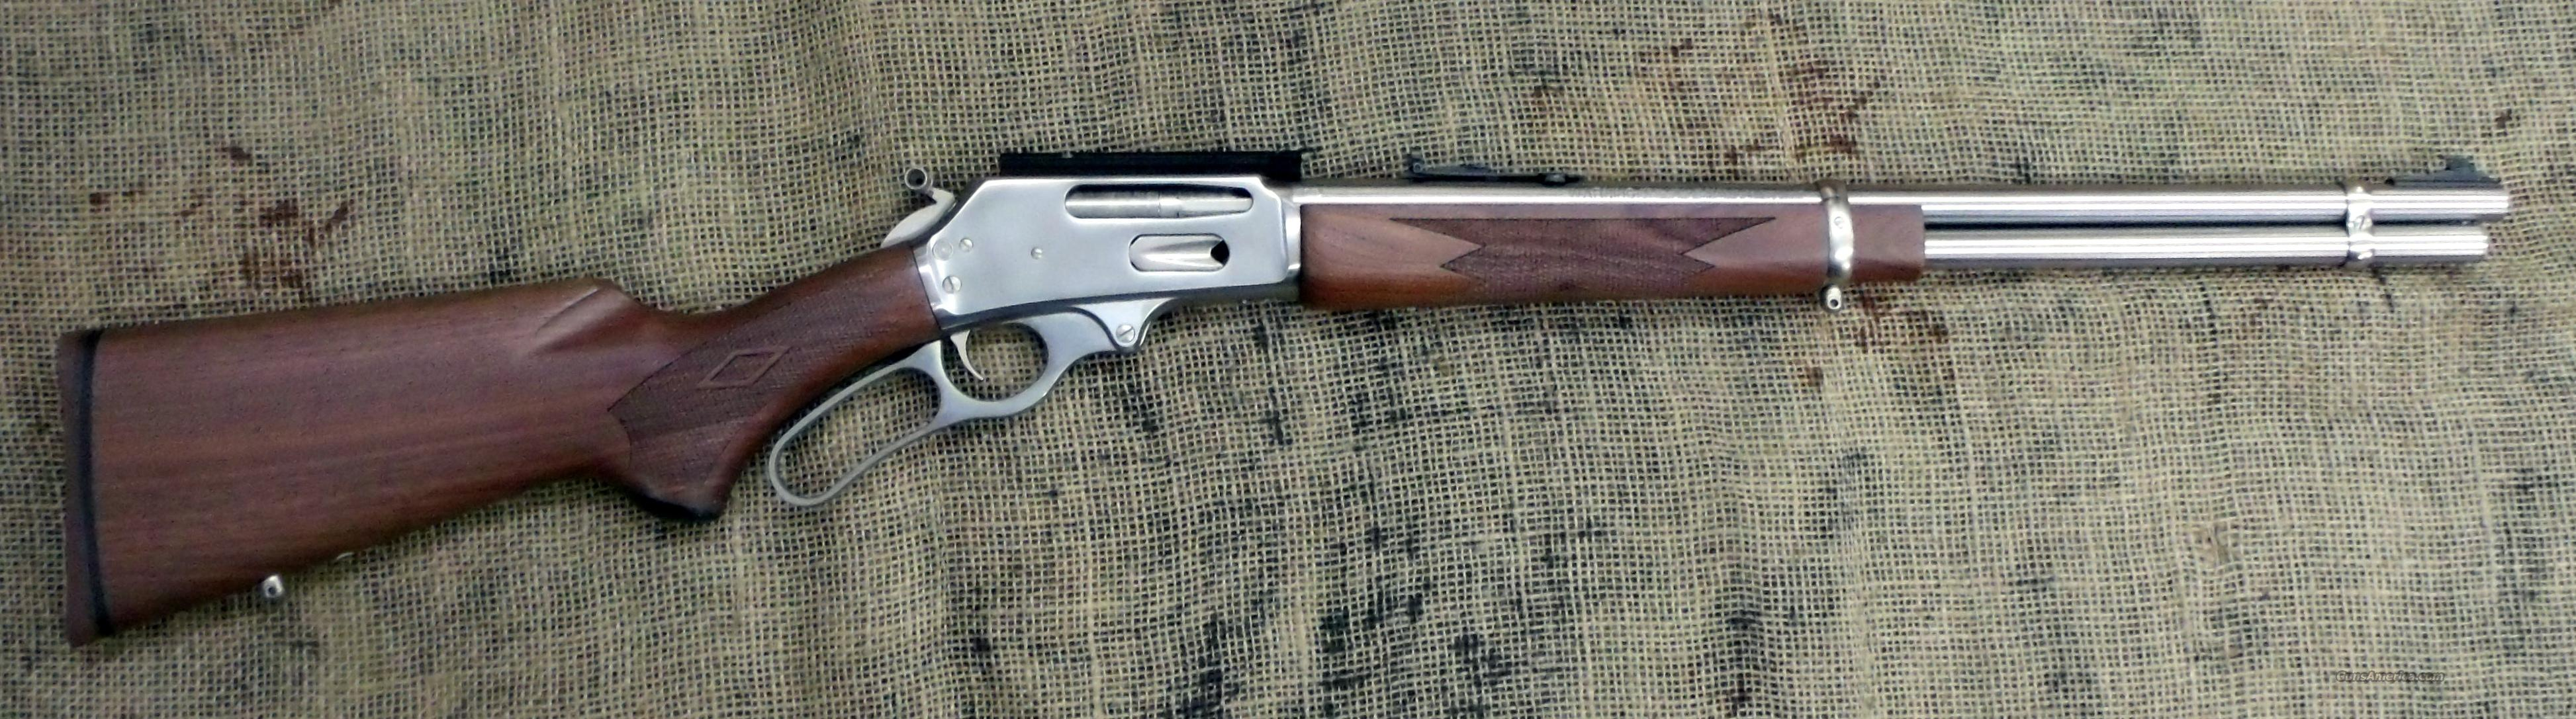 Nice Images Collection: Marlin Rifle Desktop Wallpapers